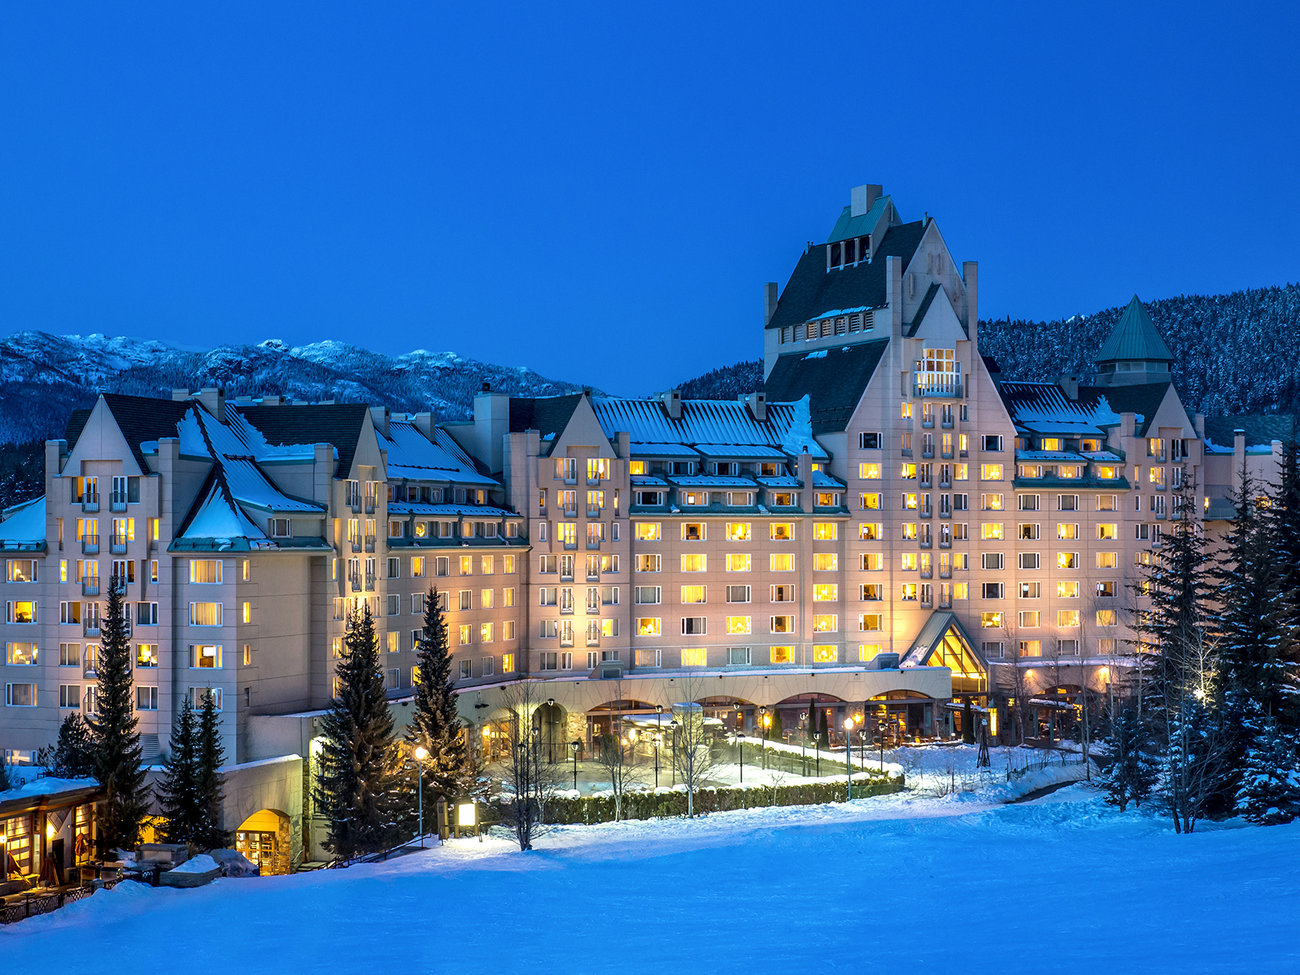 Fairmont Chateau Whistler Hotel